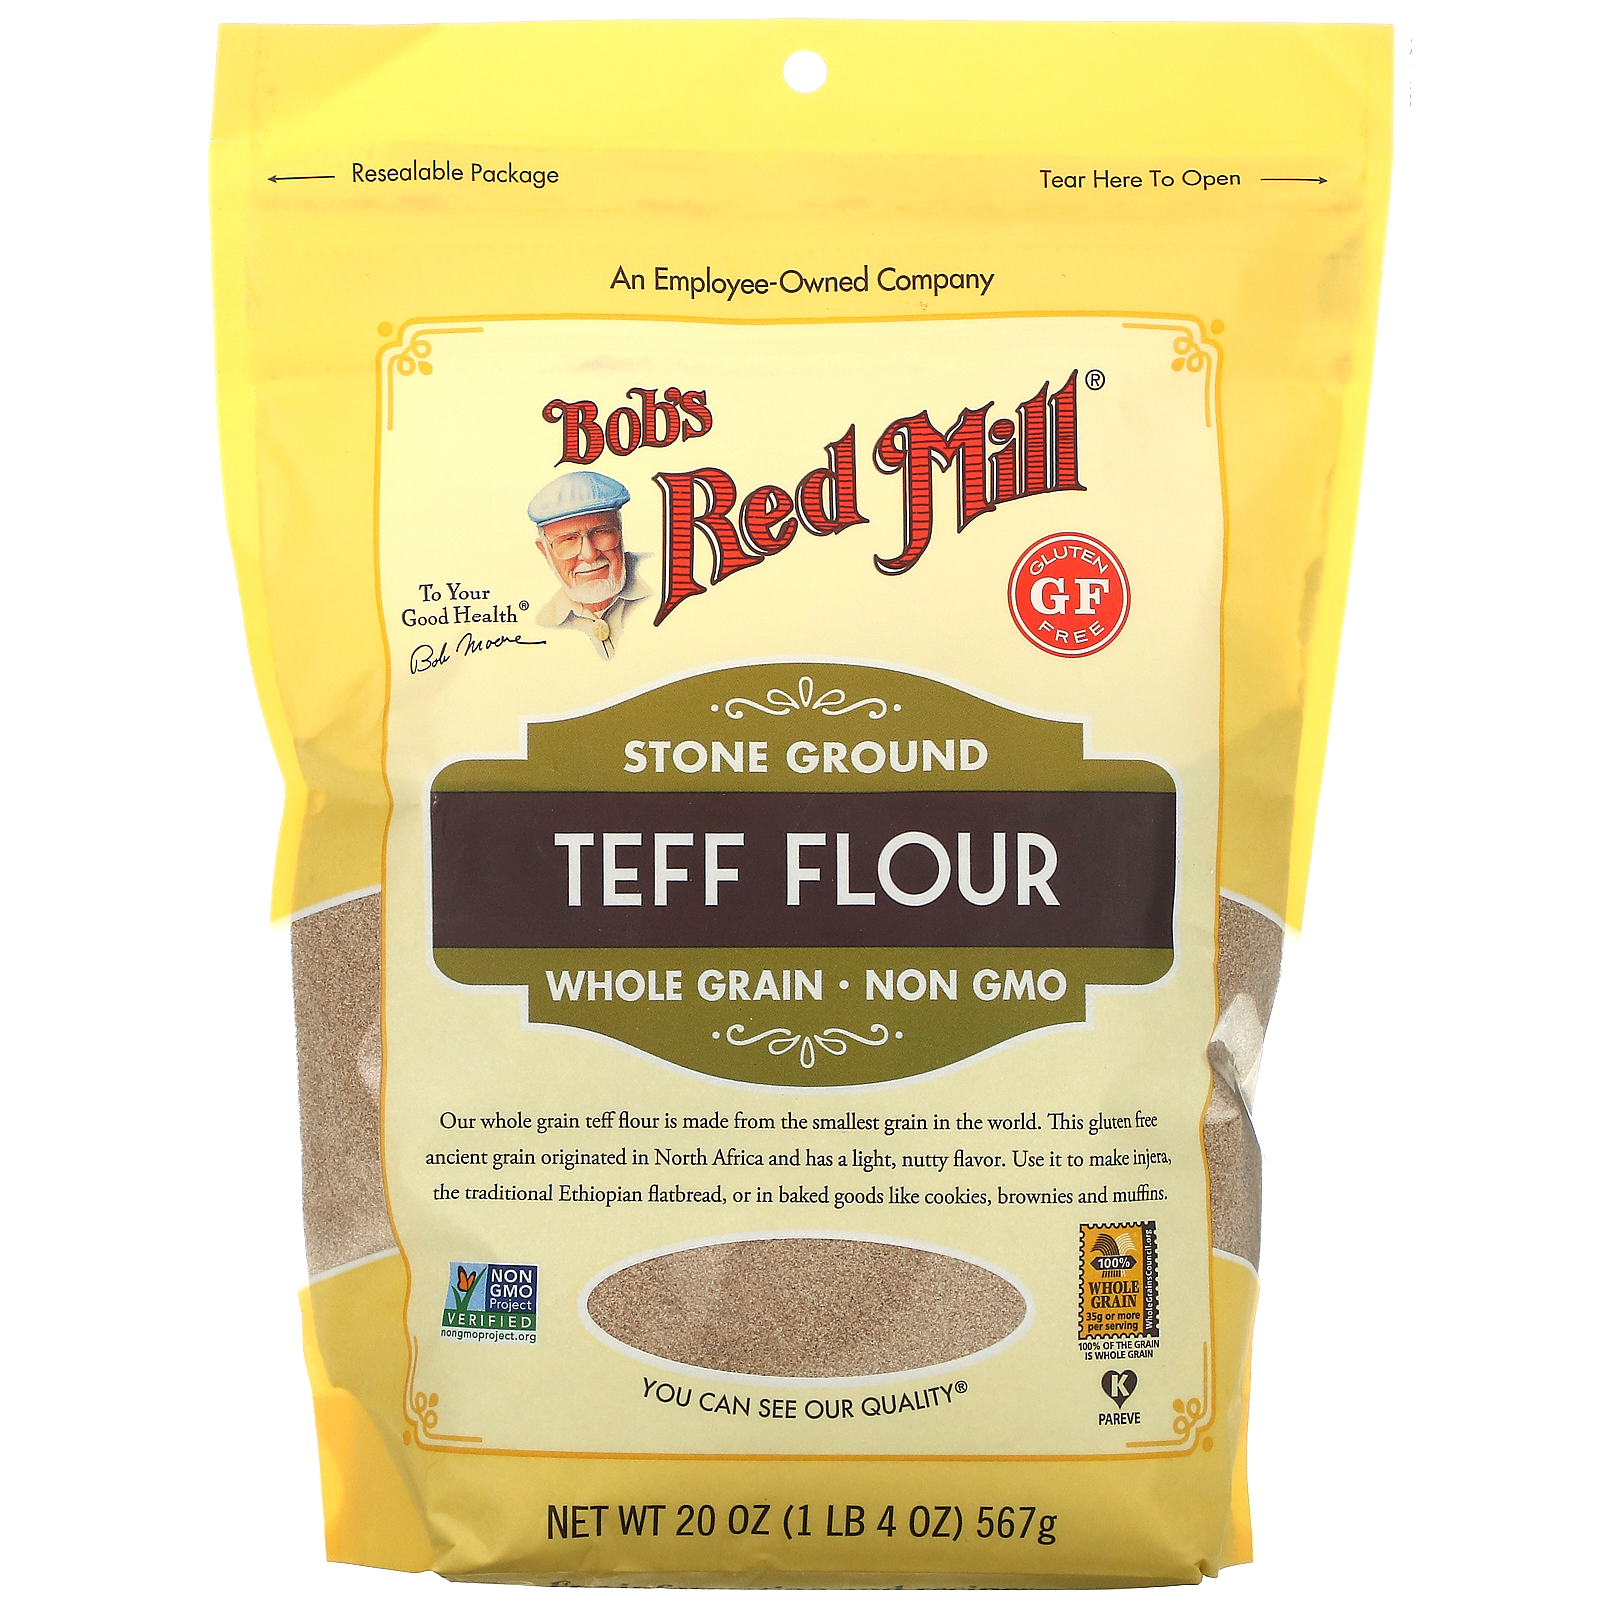 Bob's Red Mill, Stone Ground Teff Flour, Whole Grain, 20 oz ( 567 g)